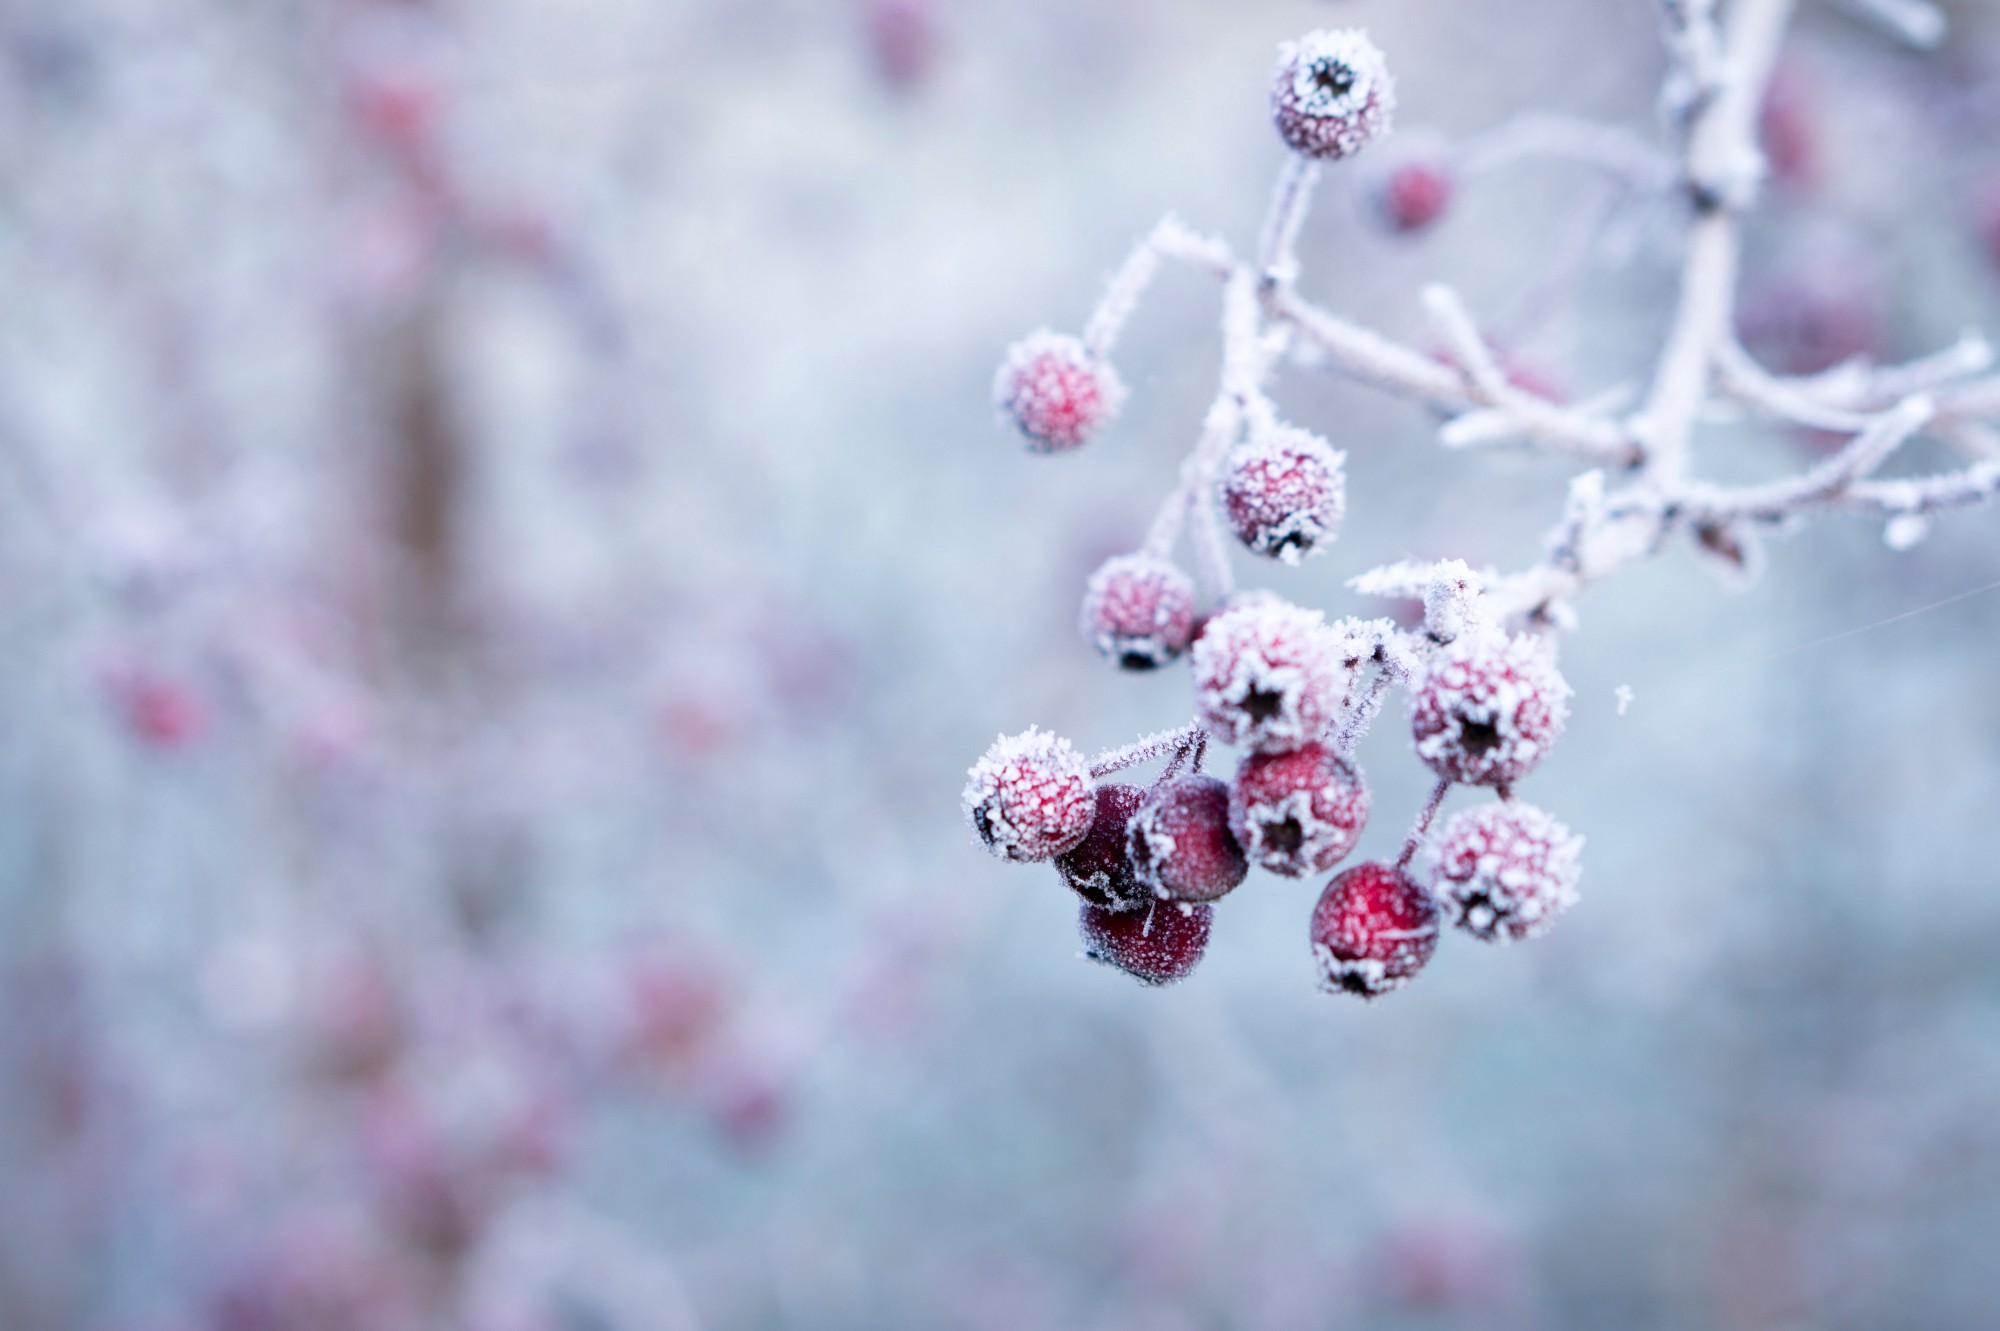 Close up photograph of red berries on a branch covered in frost.